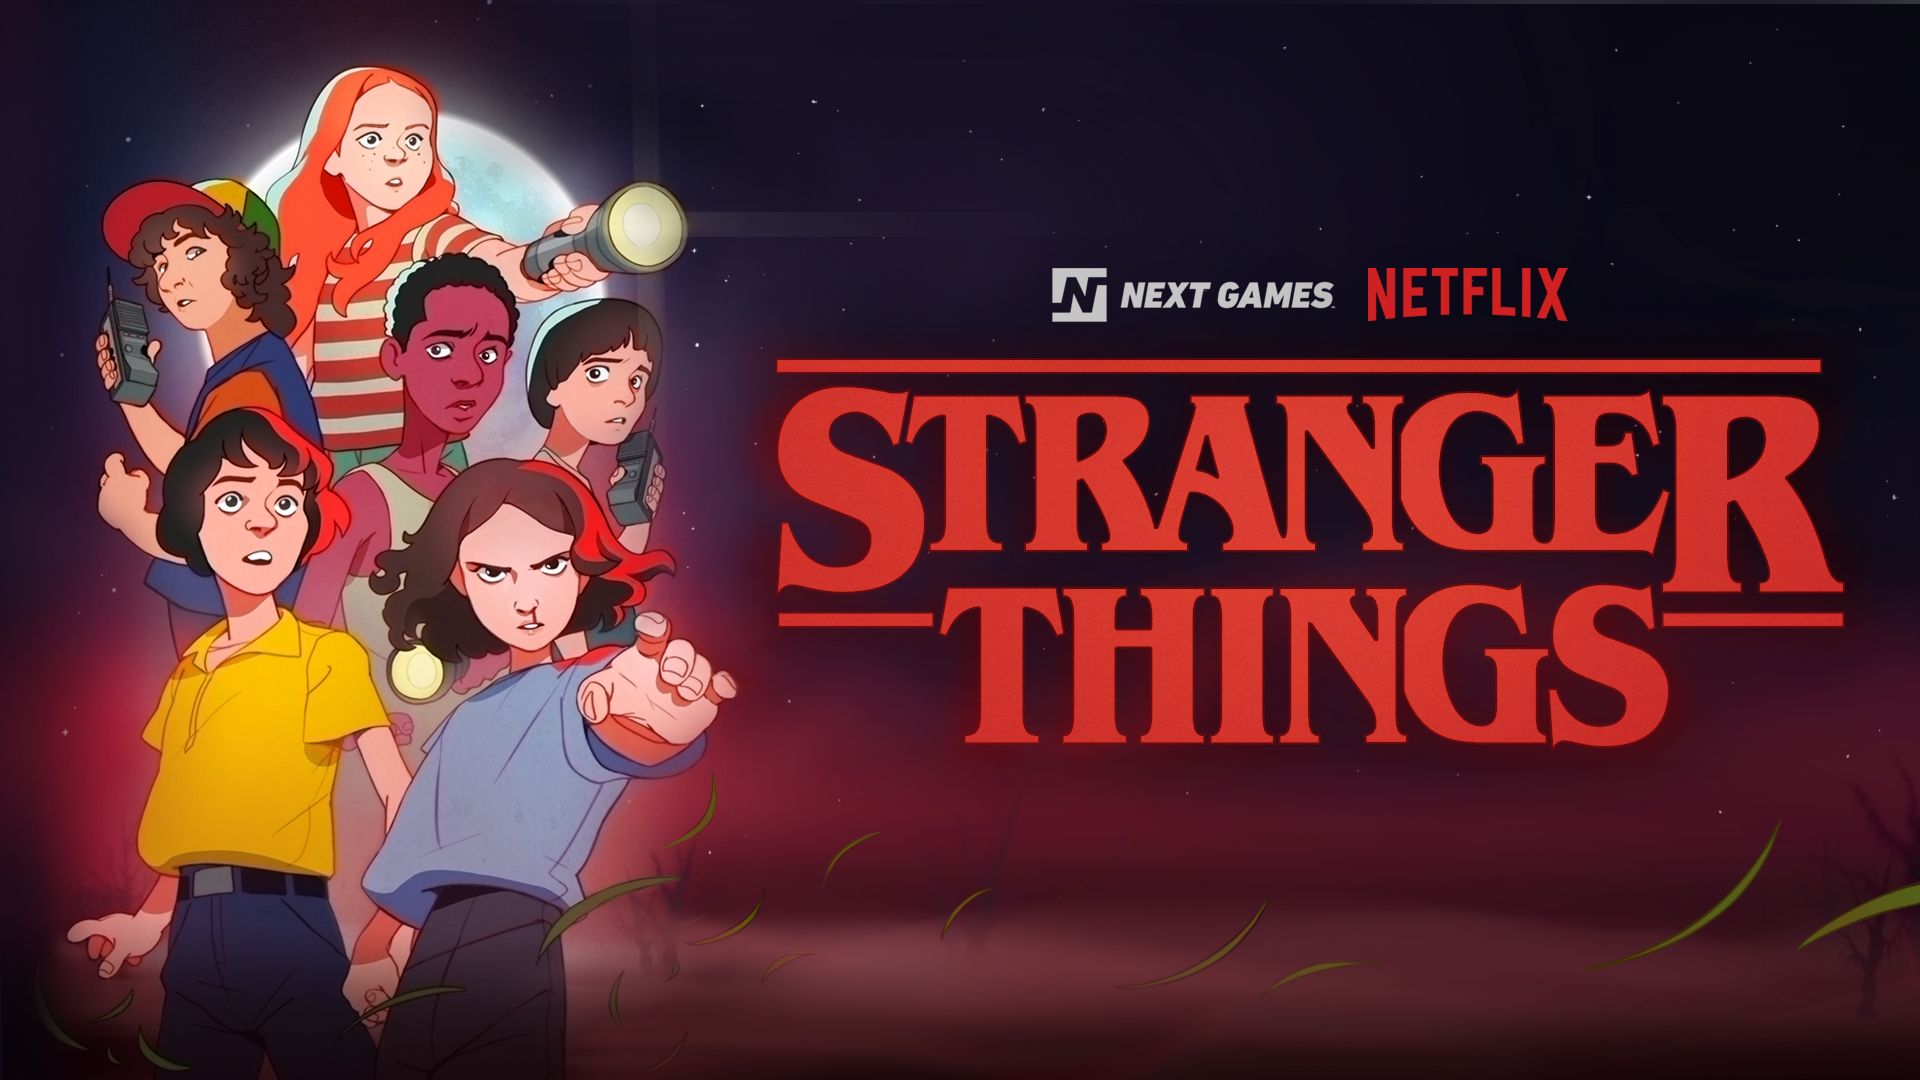 Stranger Things RPG to arrive on mobile in 2020